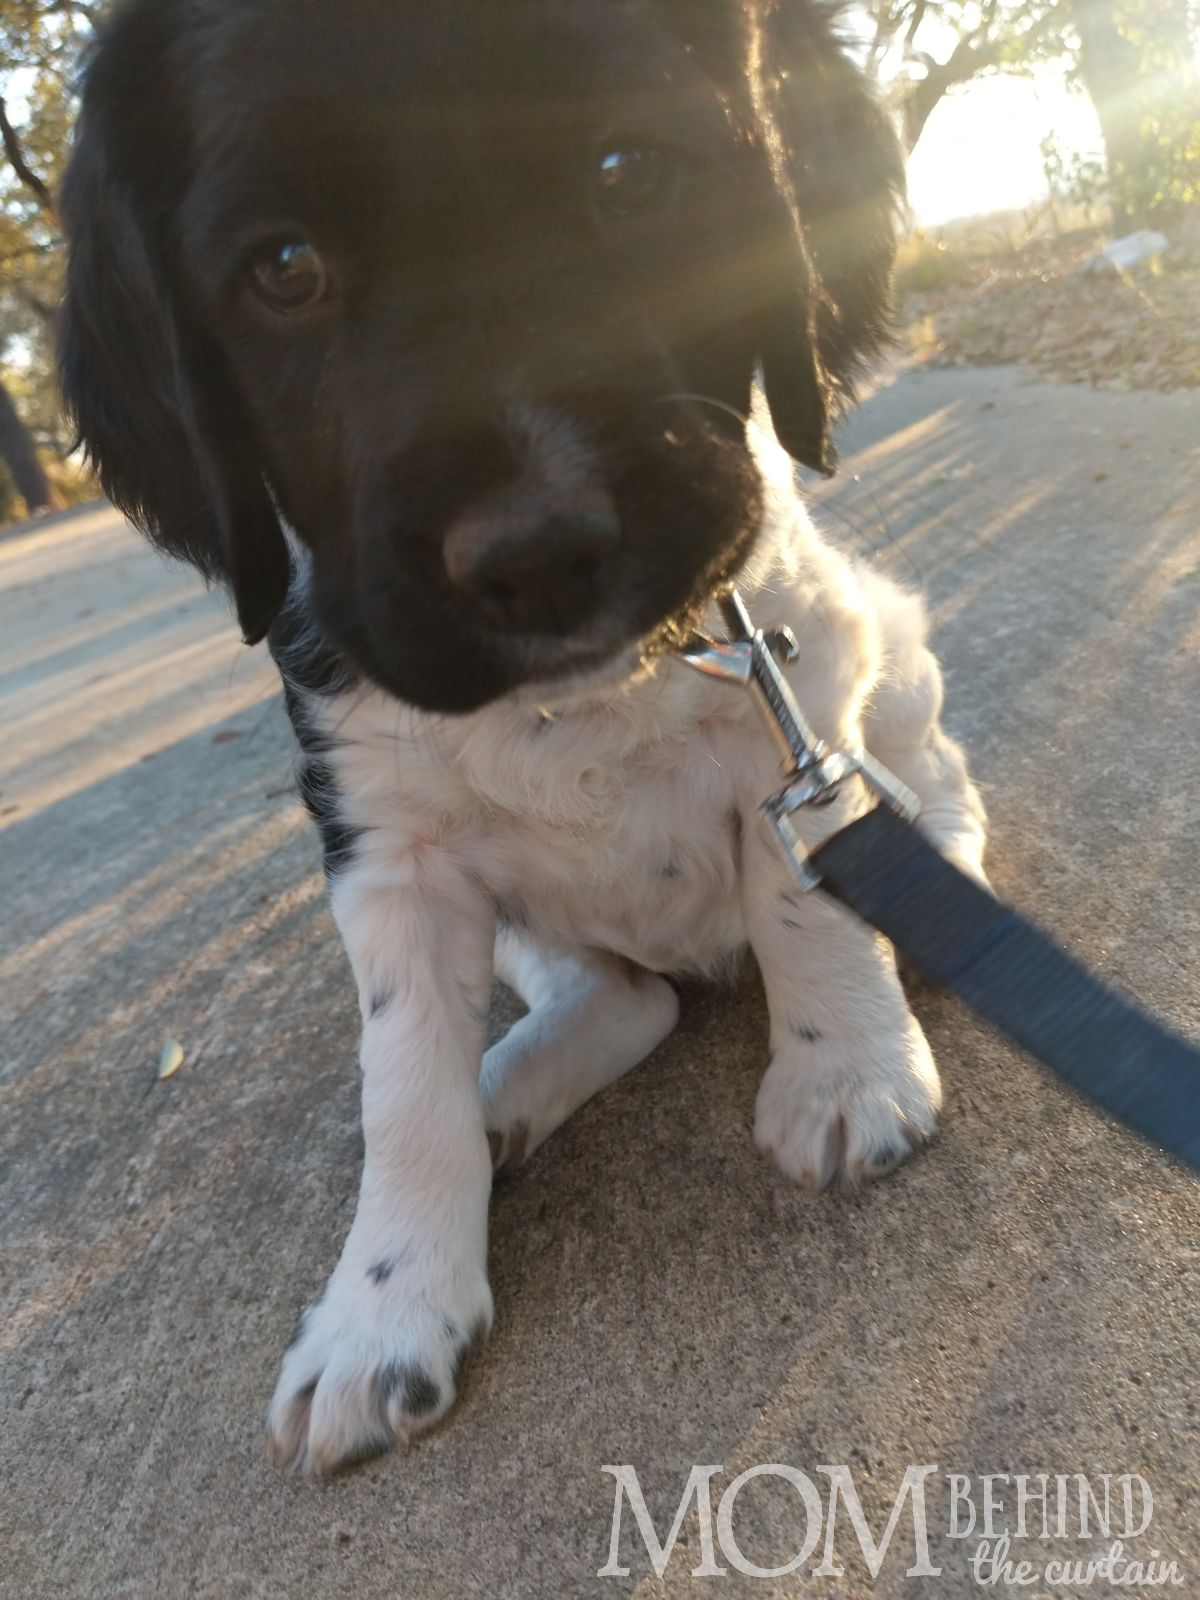 New puppy on leash. Looking to find a puppy near you, on sale or to adopt? You're probably going to search online. Read to learn how I found a puppy near me.